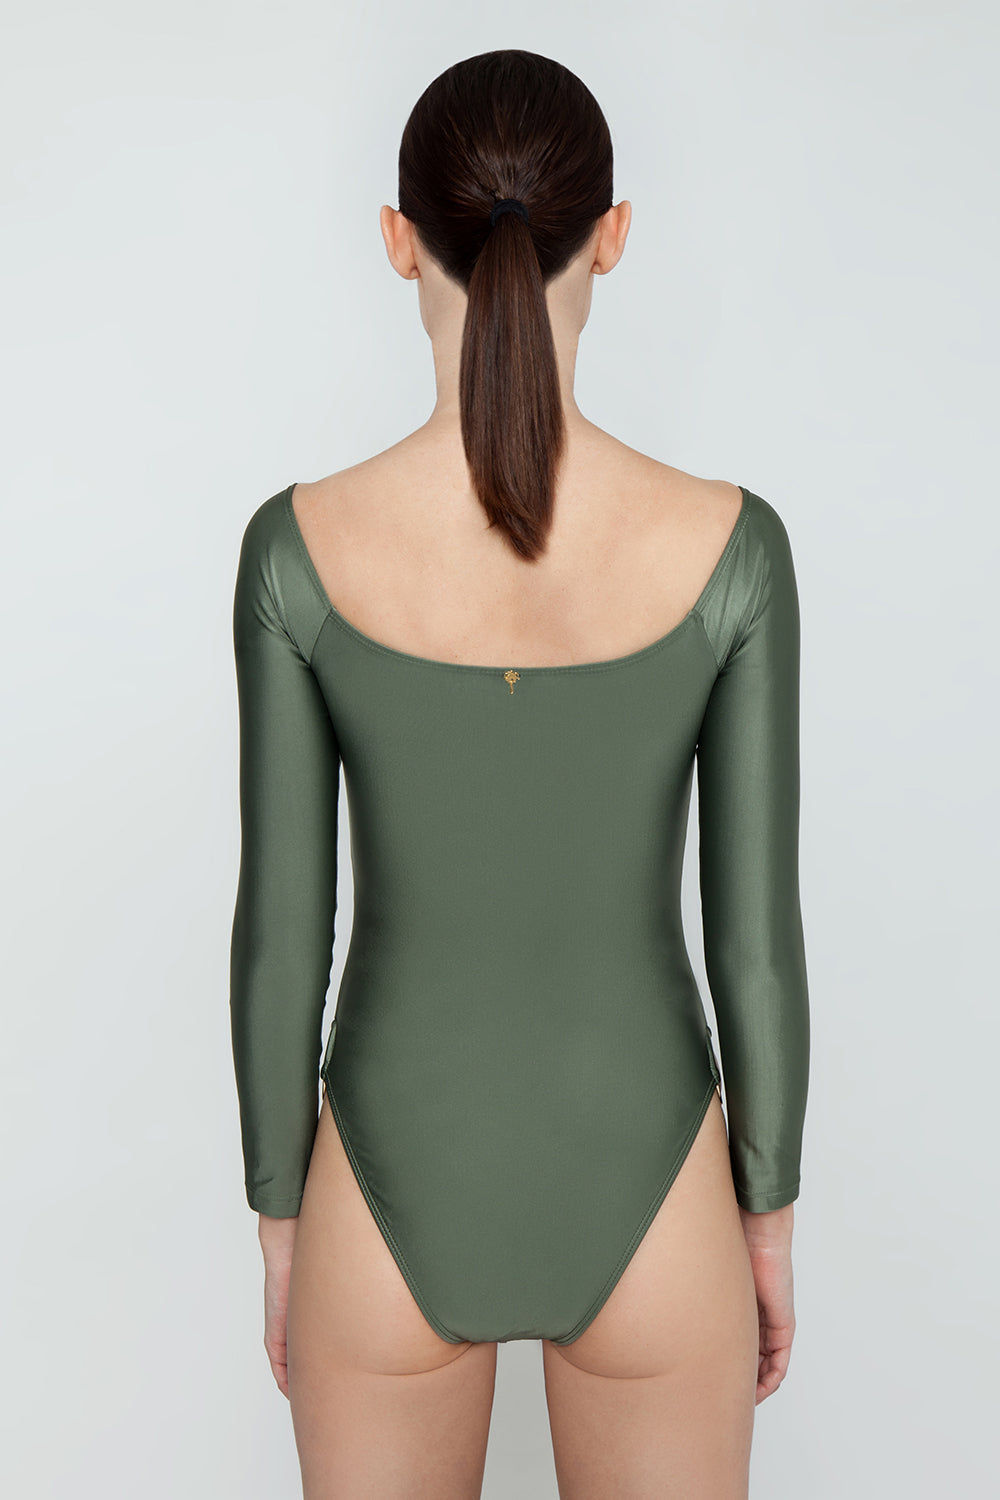 AGUA DE COCO Brazilian Off Shoulder Side Detail One Piece Swimsuit - Olive Green One Piece | Olive Green| Agua De Coco Brazilian Off Shoulder Side Detail One Piece Swimsuit - Olive GreenOlive green one piece Off shoulder  Long sleeves  Side ring hardware detail  Cheeky - moderate coverage Back View